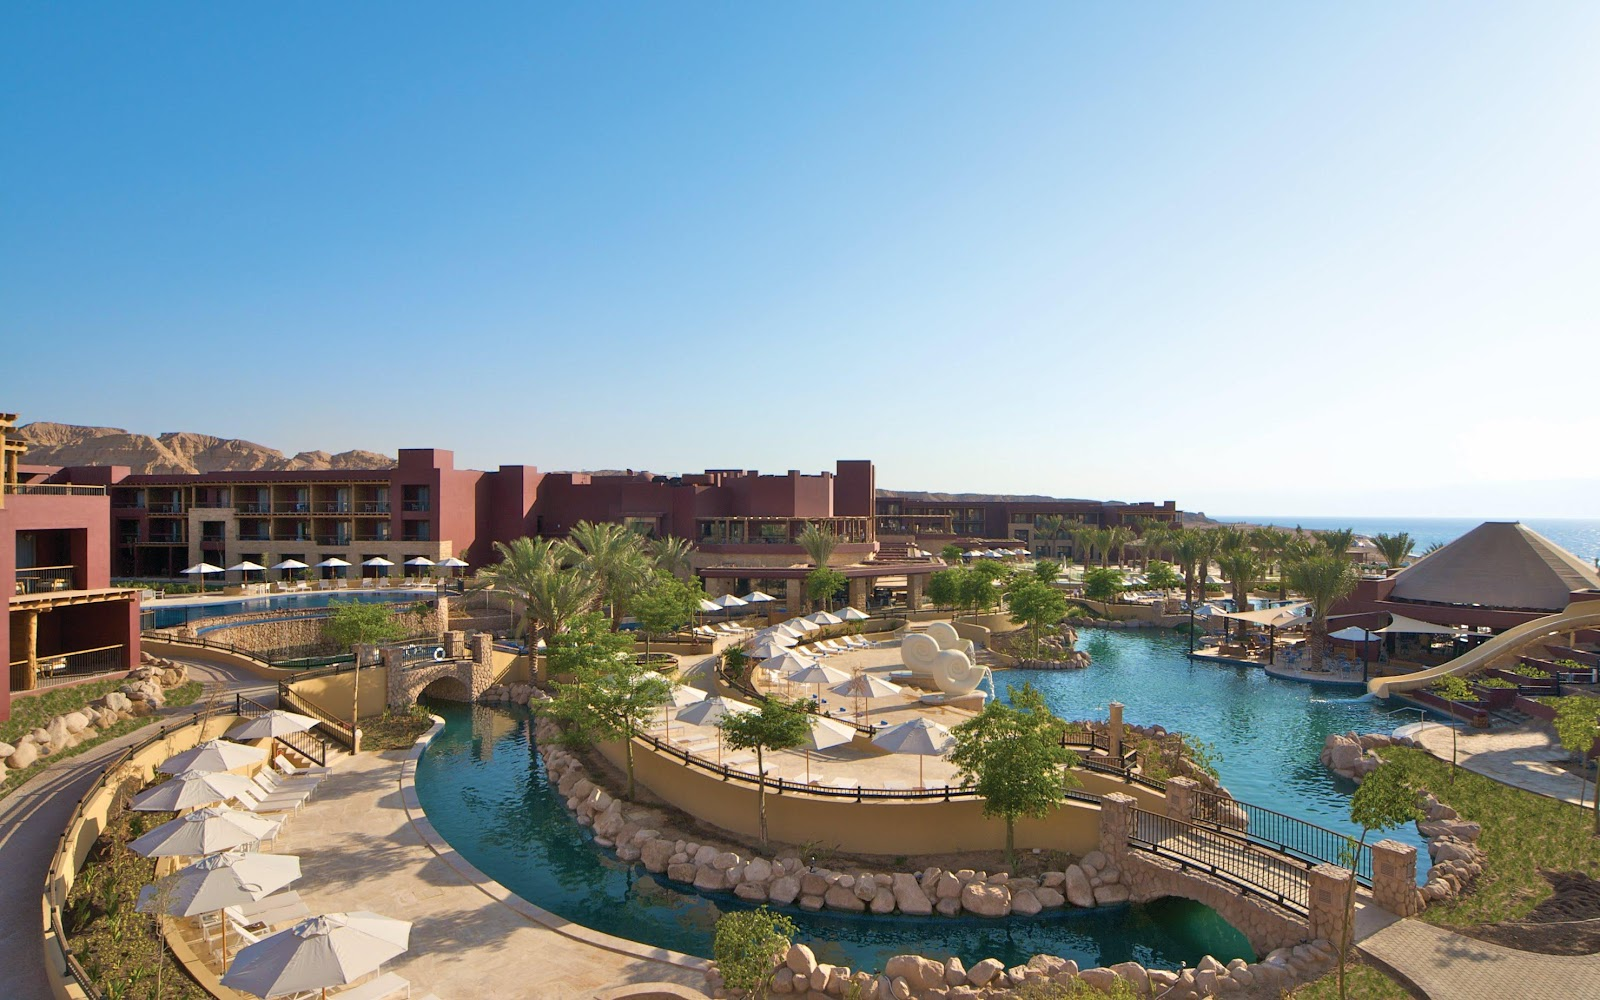 D:\Jamila H Drive\Movenpick Resort and Spa Tala Bay Media Kit\Outdoor\Resort Overview Movenpick Resort & Spa Tala Bay Aqaba (2).jpg